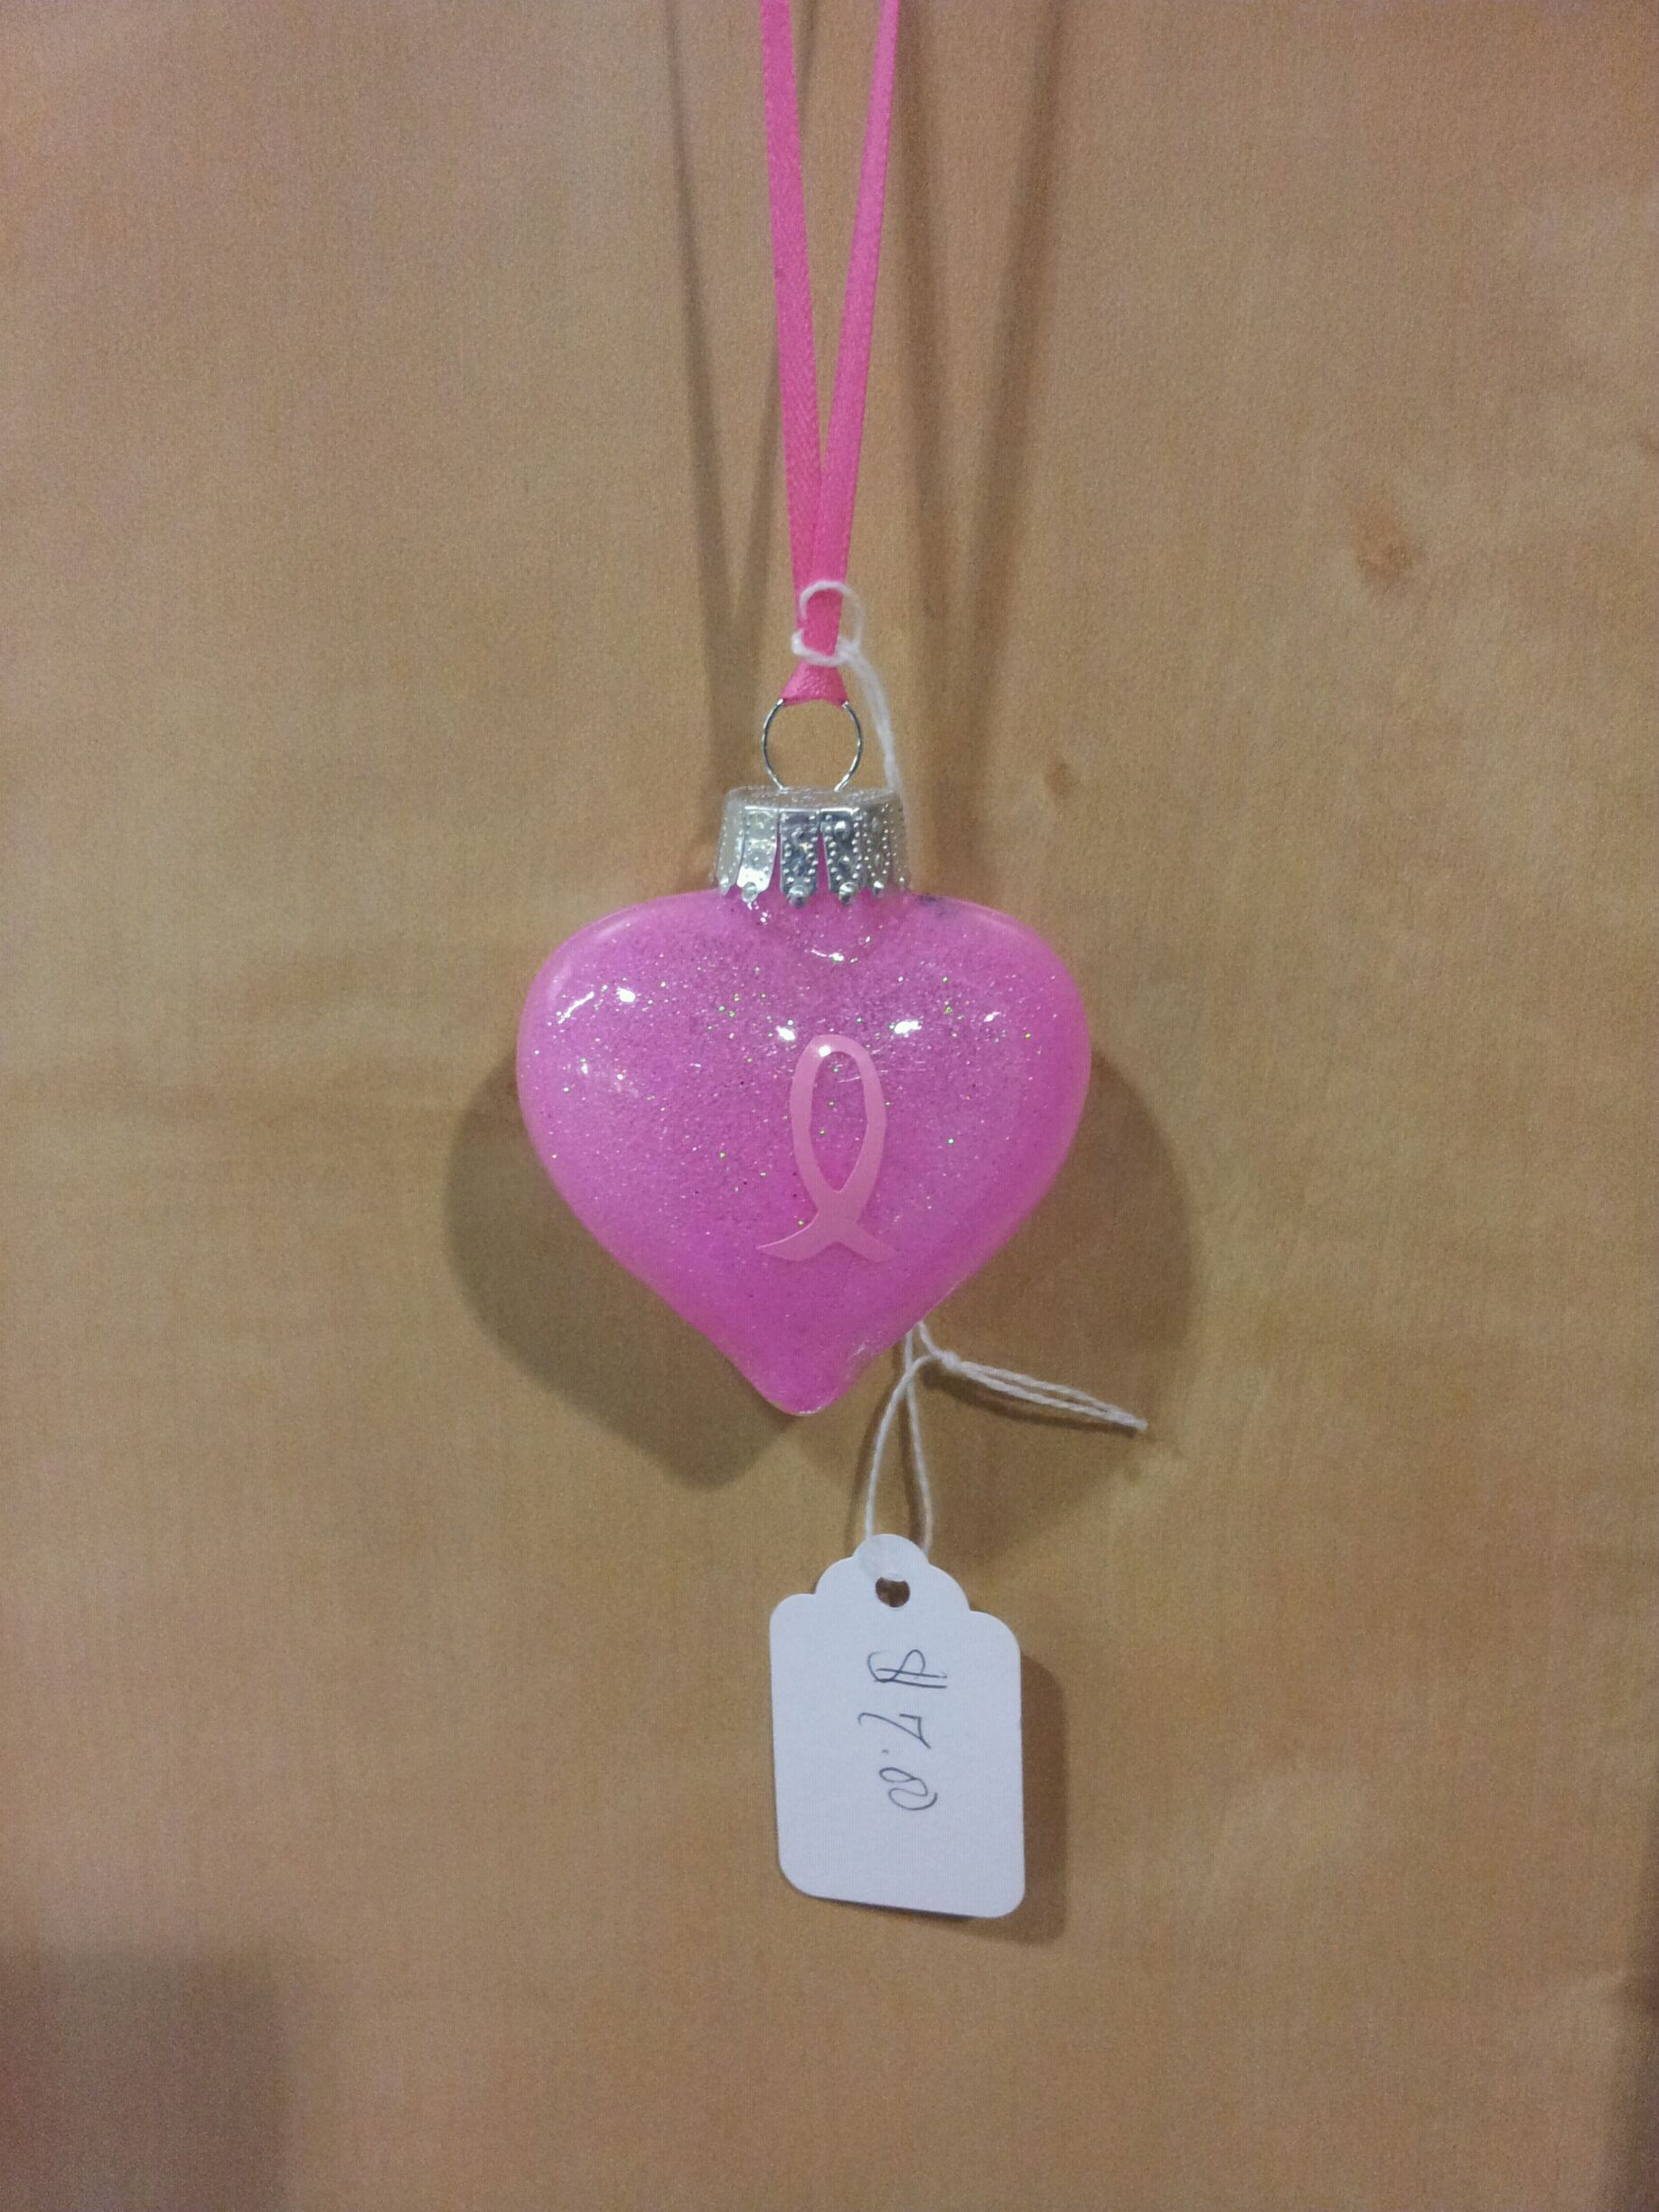 Handmade glass christmas ornaments - Pink Breast Cancer Heart Handmade Glass Christmas Ornament